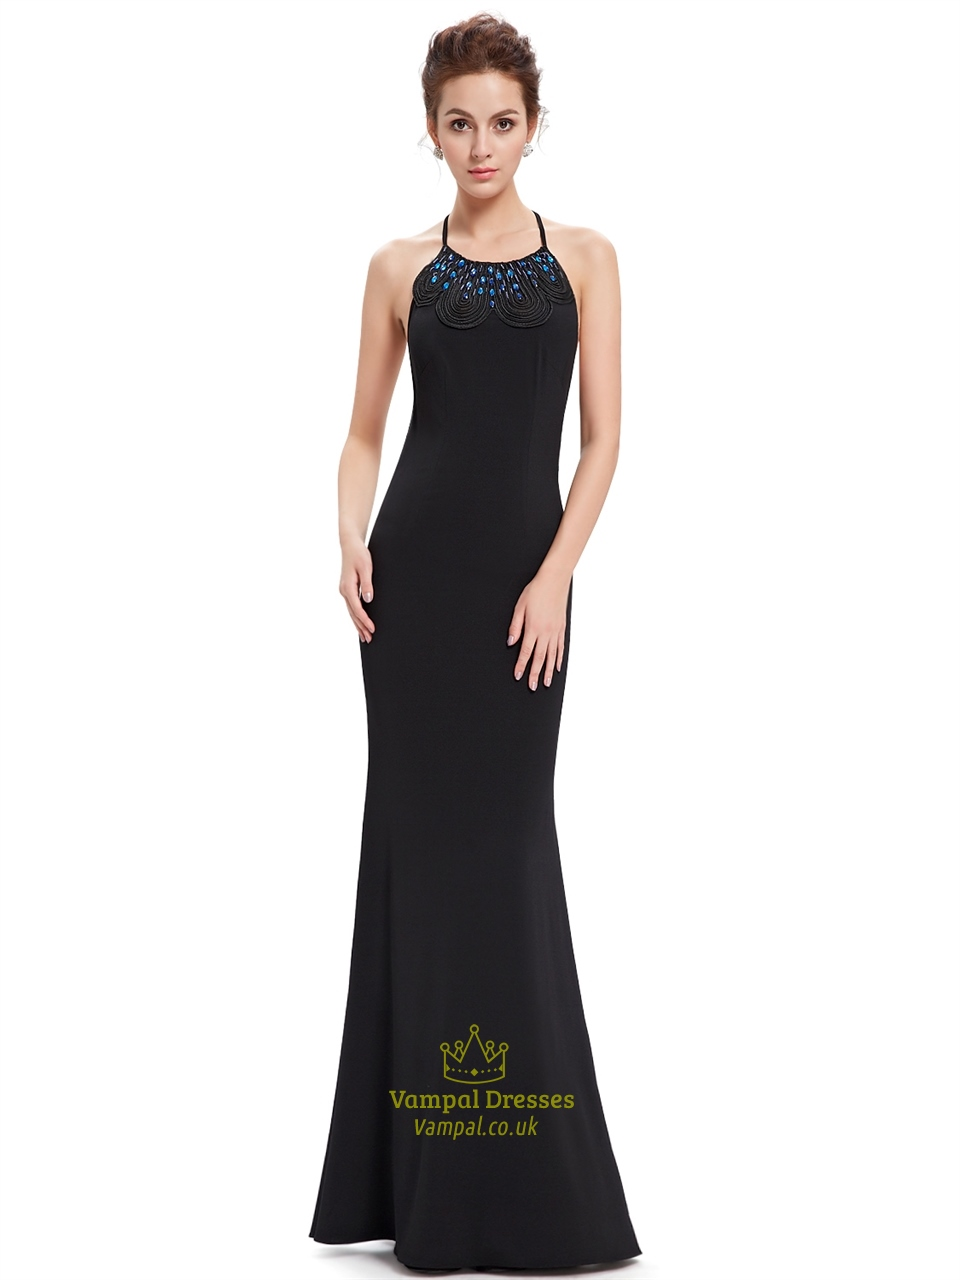 Black Long Prom Dress With Mermaid Skirt And Backless